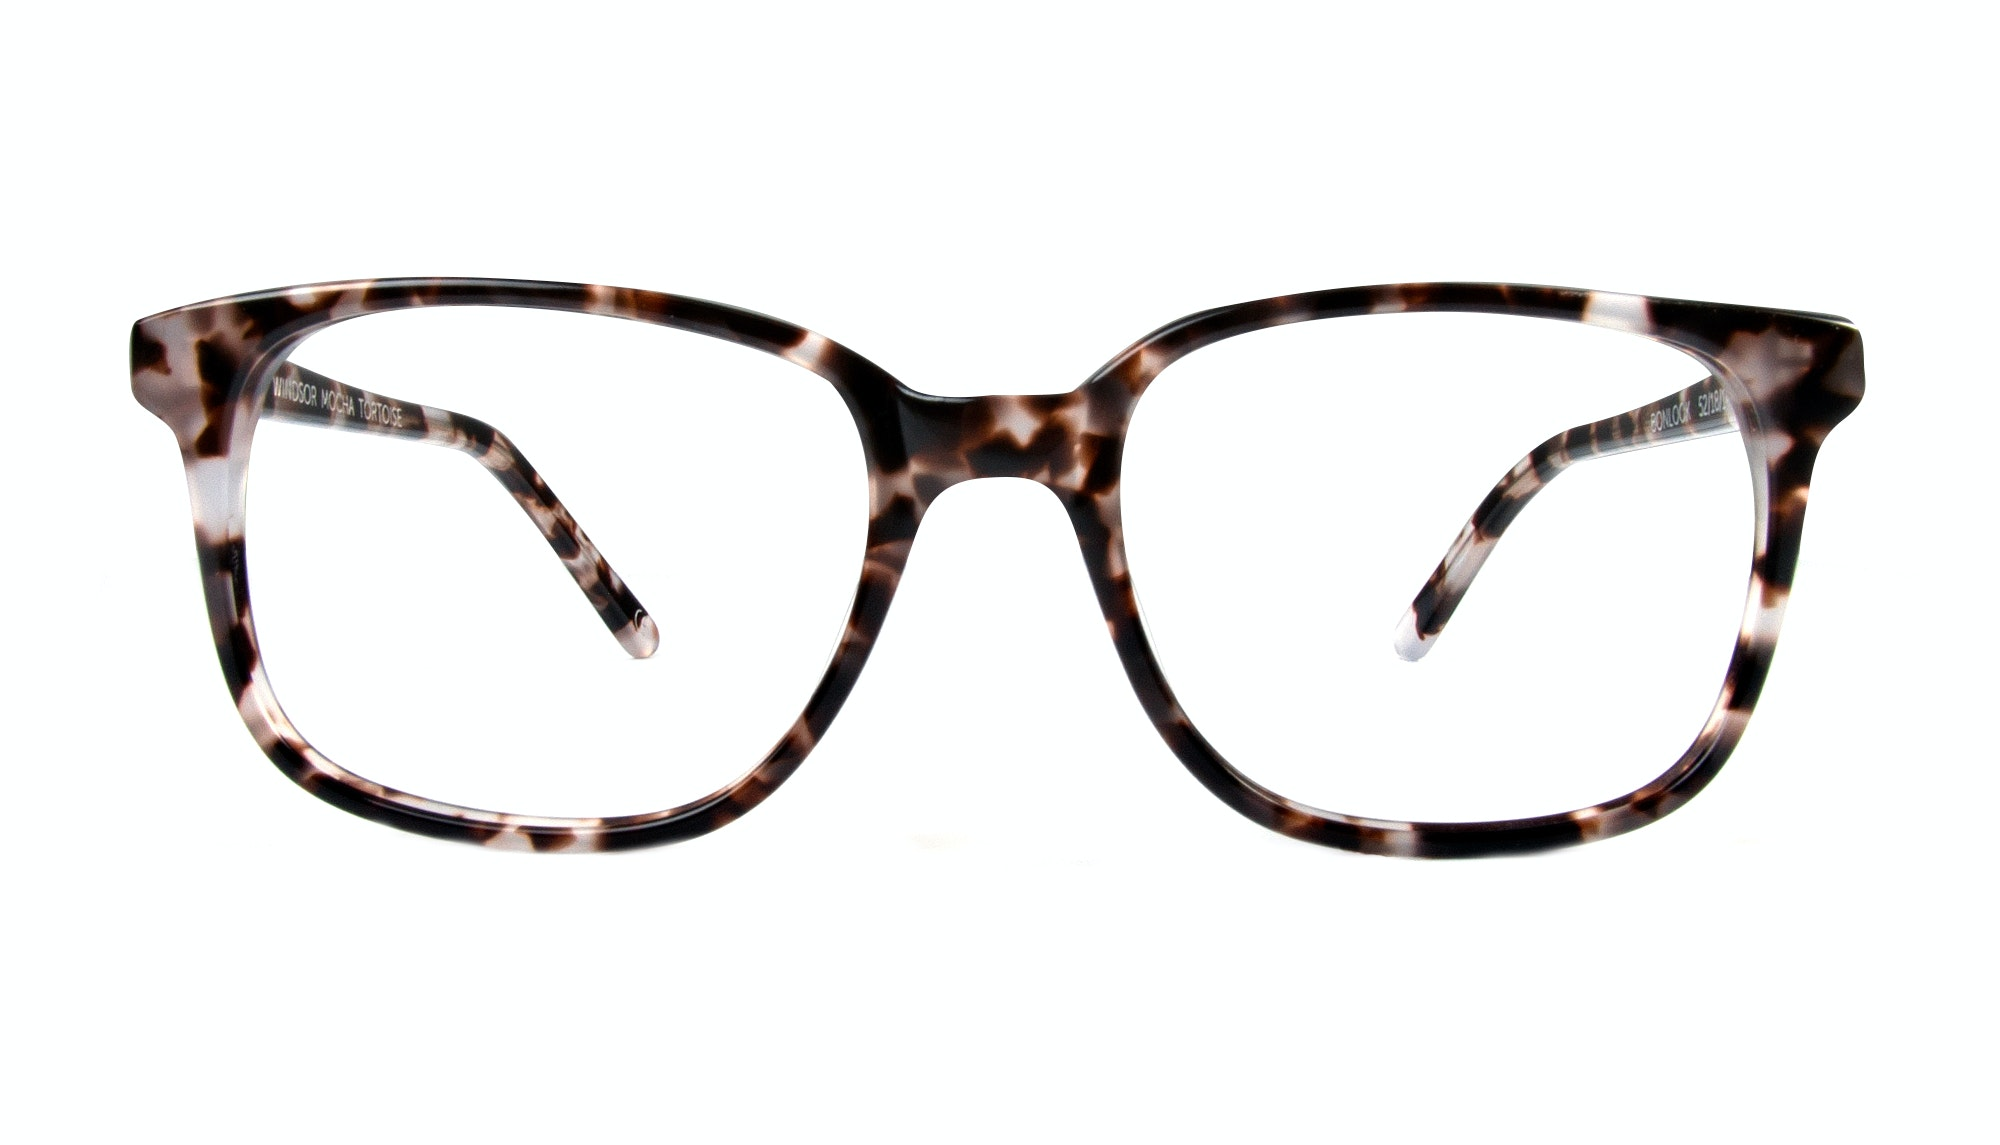 Affordable Fashion Glasses Rectangle Square Eyeglasses Men Women Windsor Mocha Tortoise